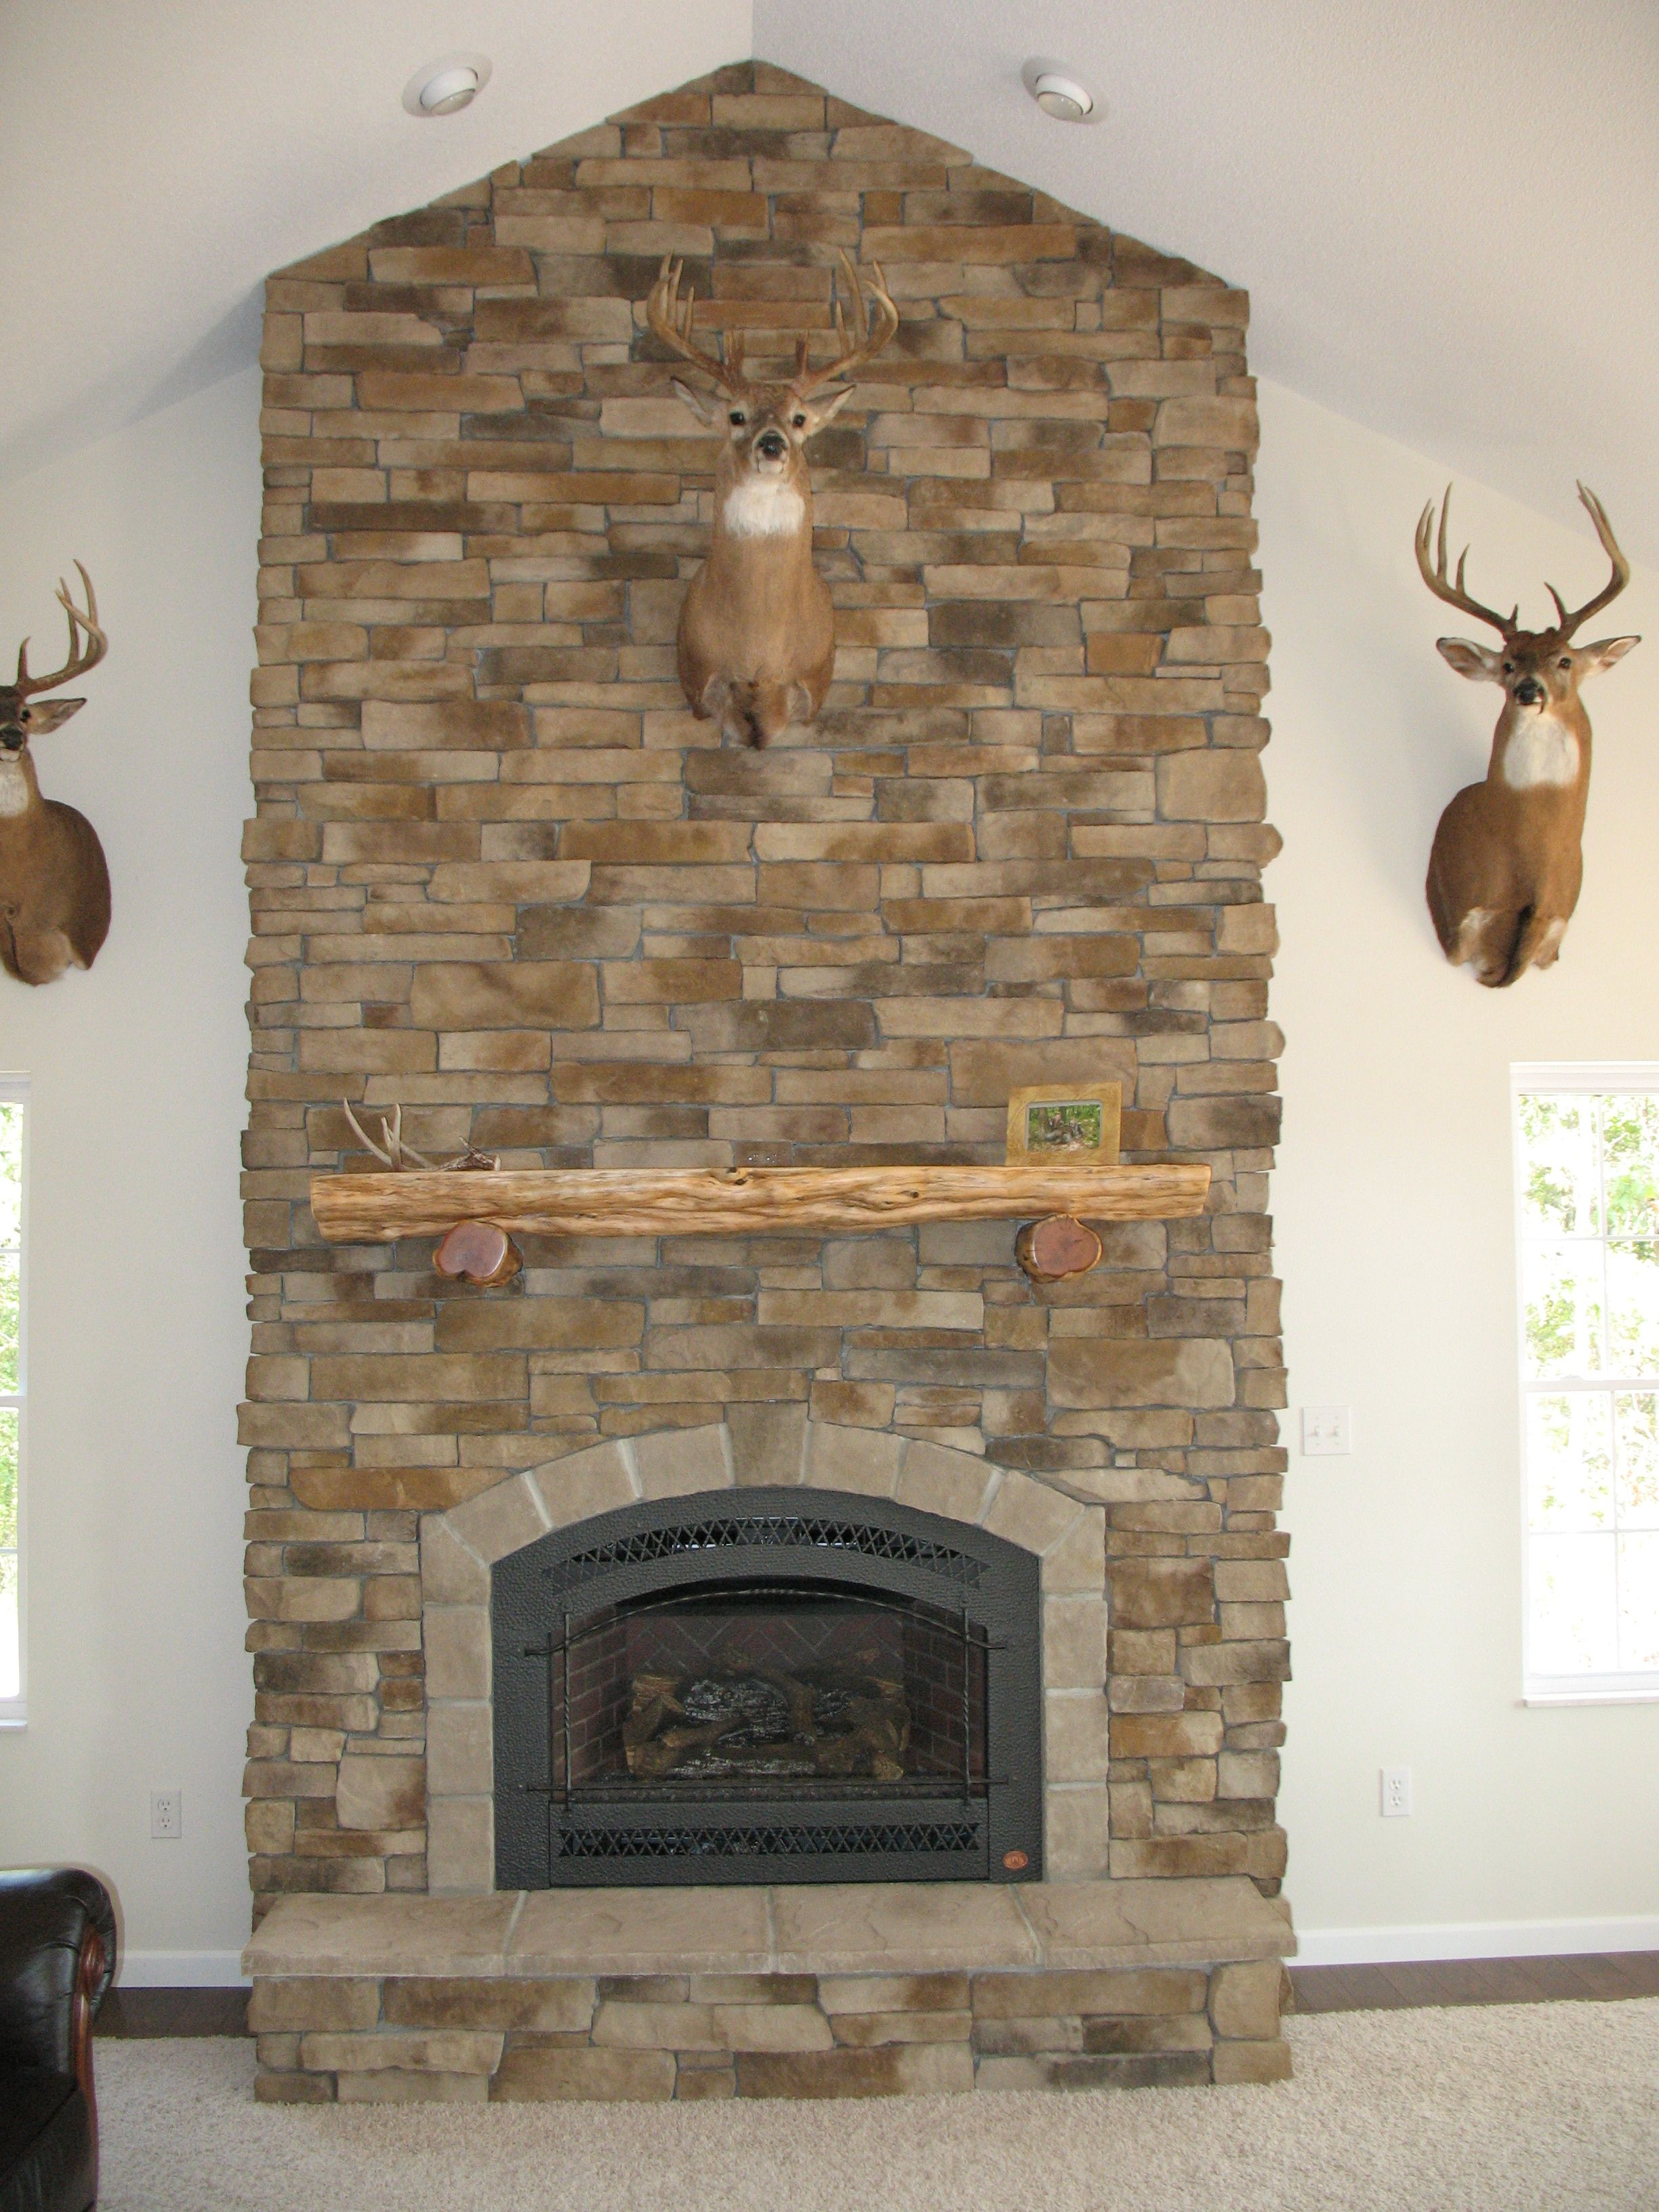 Marvelous Stone Fireplace Designs: The Exclusivity: Cozy Stacked Stone  Fireplace Designs